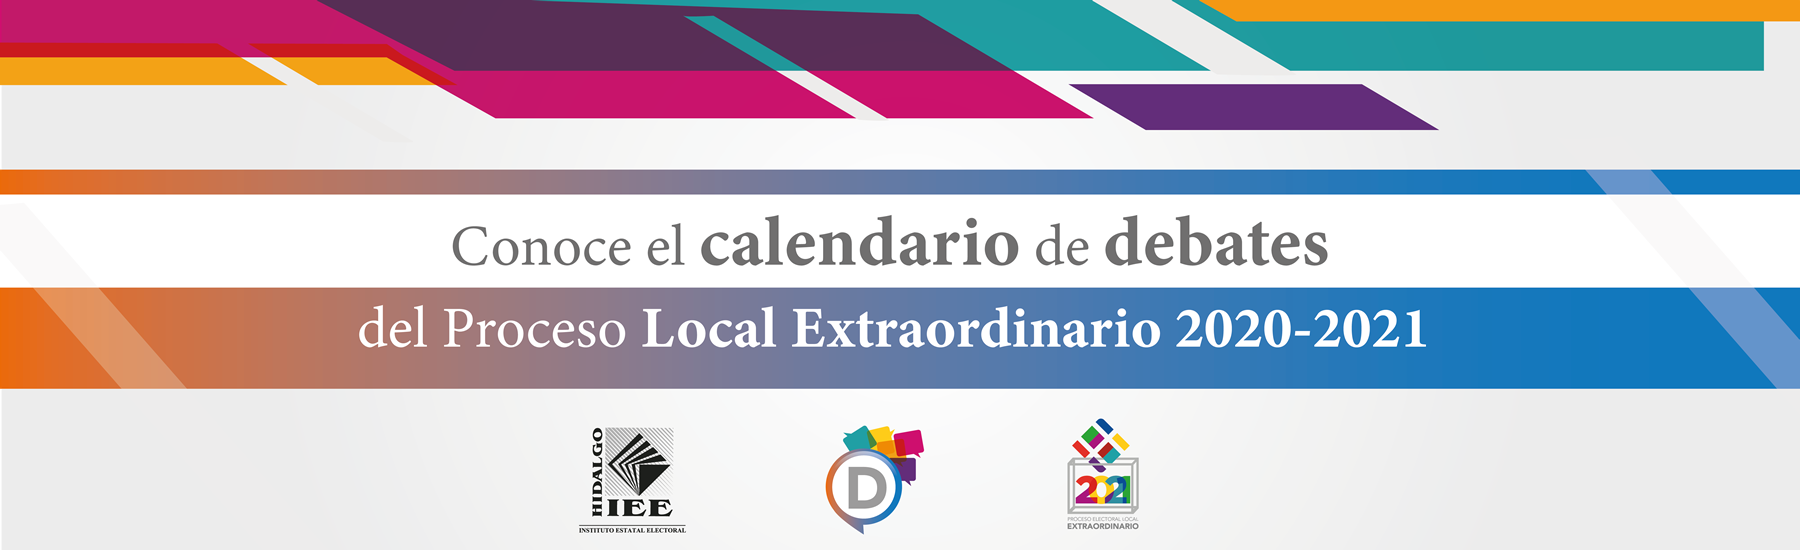 CALENDARIOEXTRAORDINARIA21